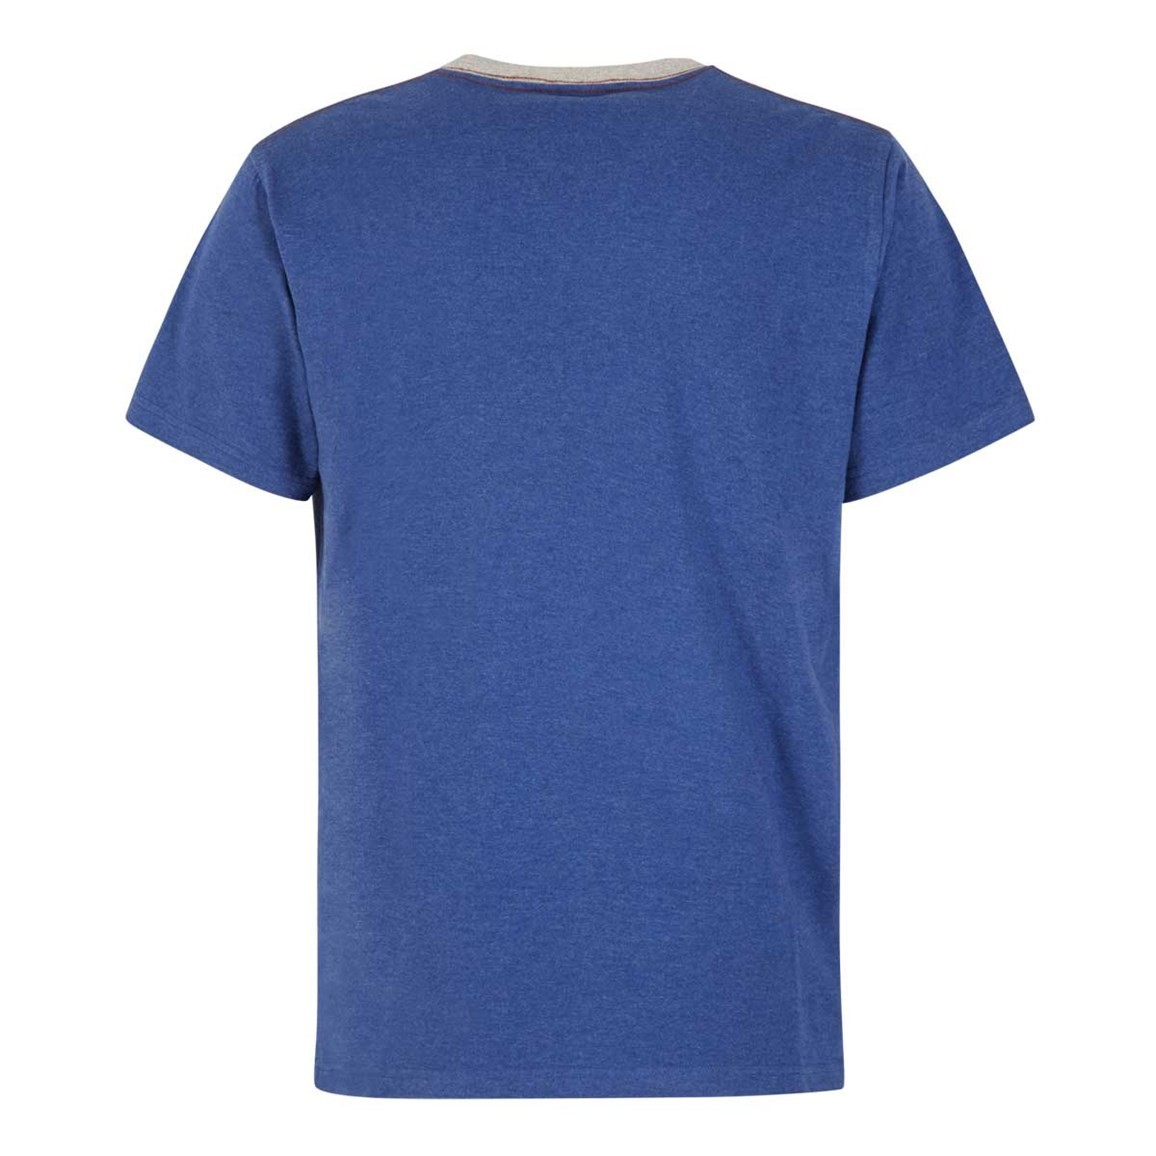 Supply graphic print t shirt estate blue for Graphic t shirt printing company